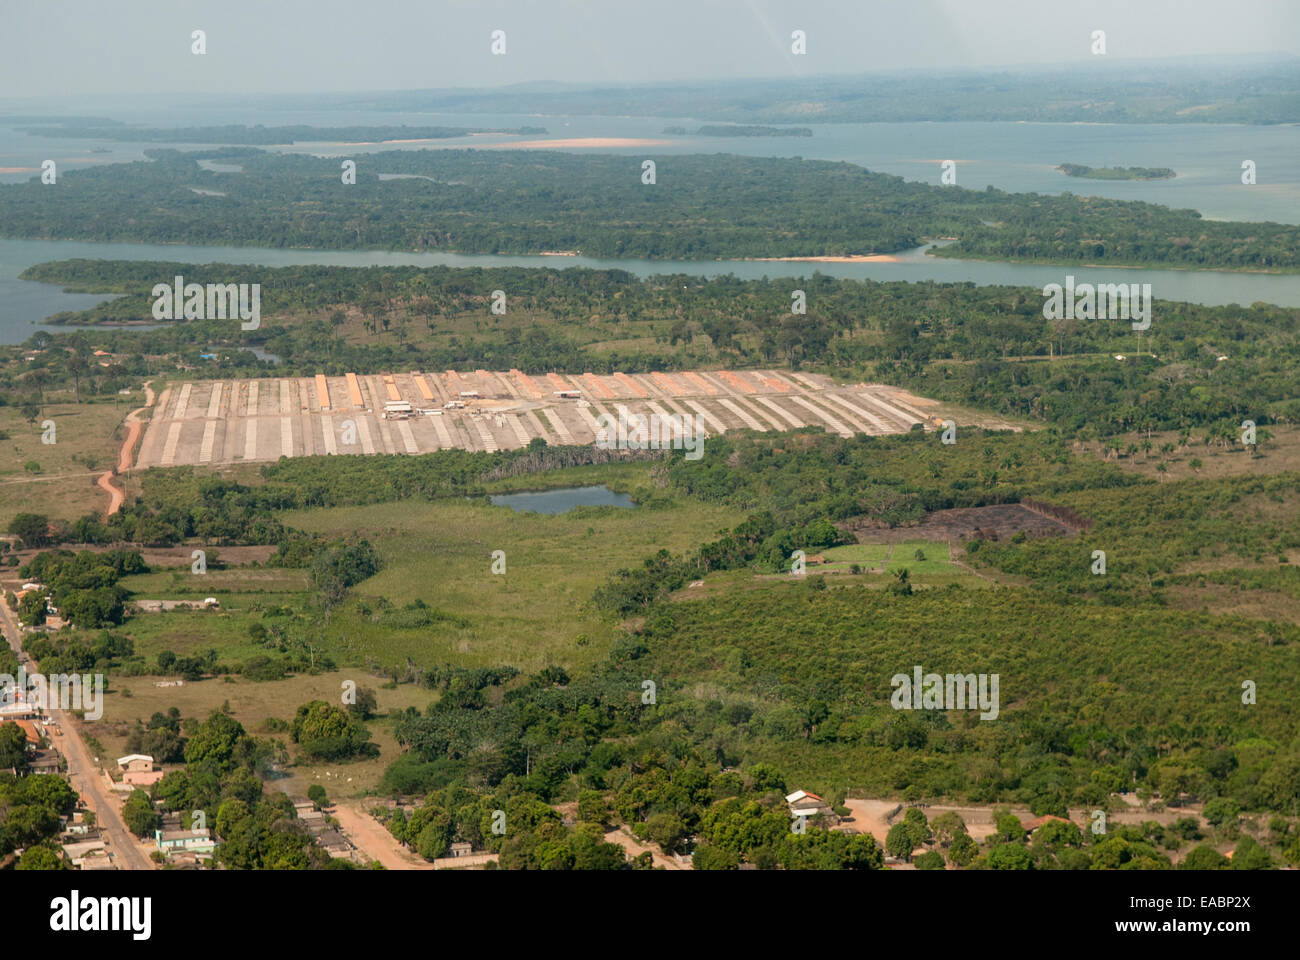 Itaituba, Brazil. Aerial view of social housing development at Piracanã II beside the Tapajos River. - Stock Image